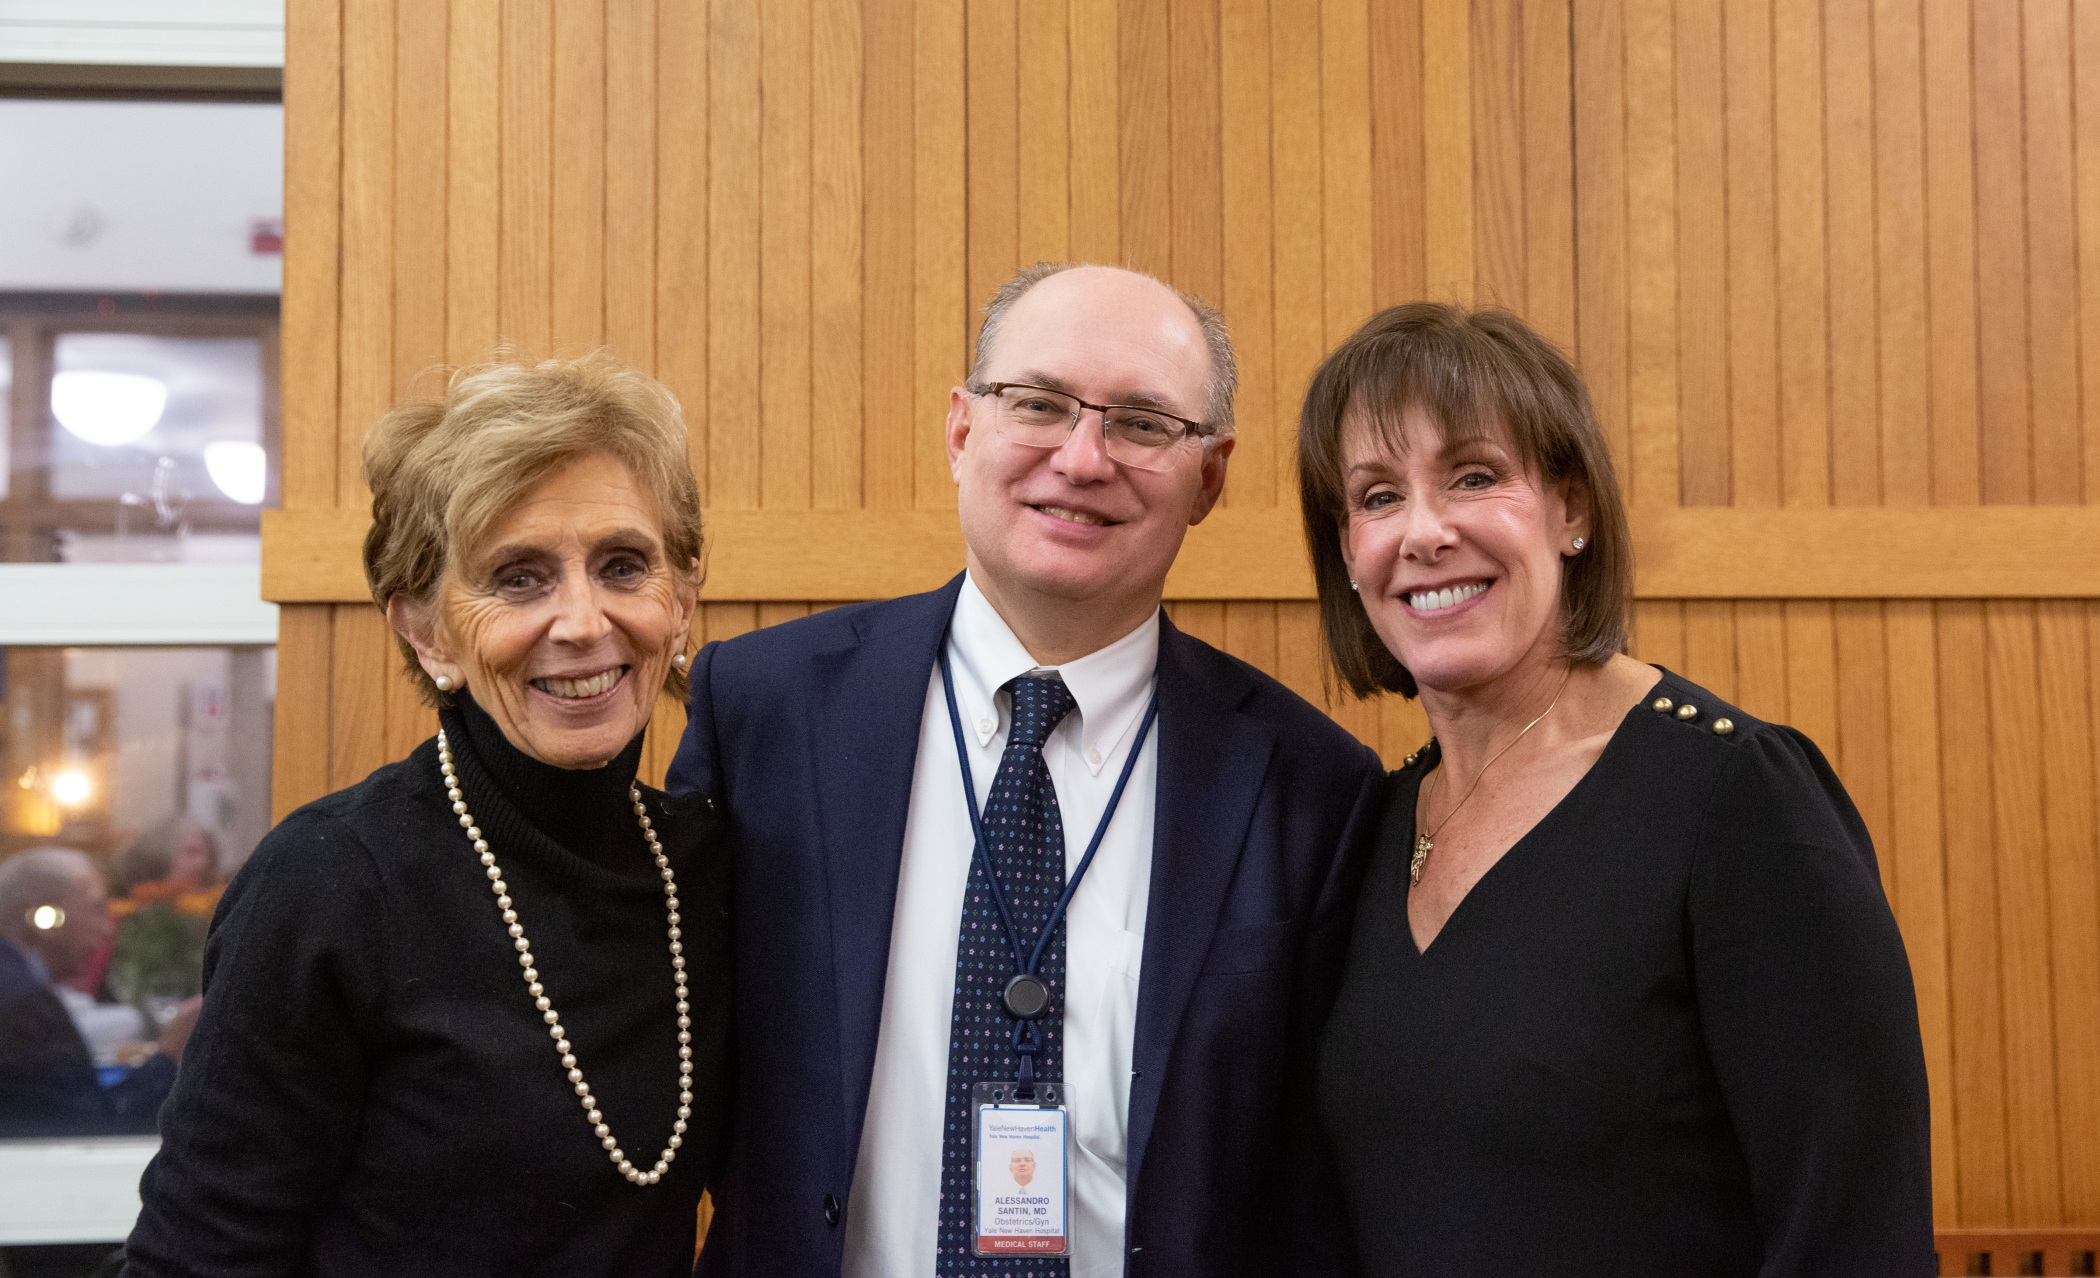 Mary Digioia, Alessandro Santin, MD and Barbara Bender